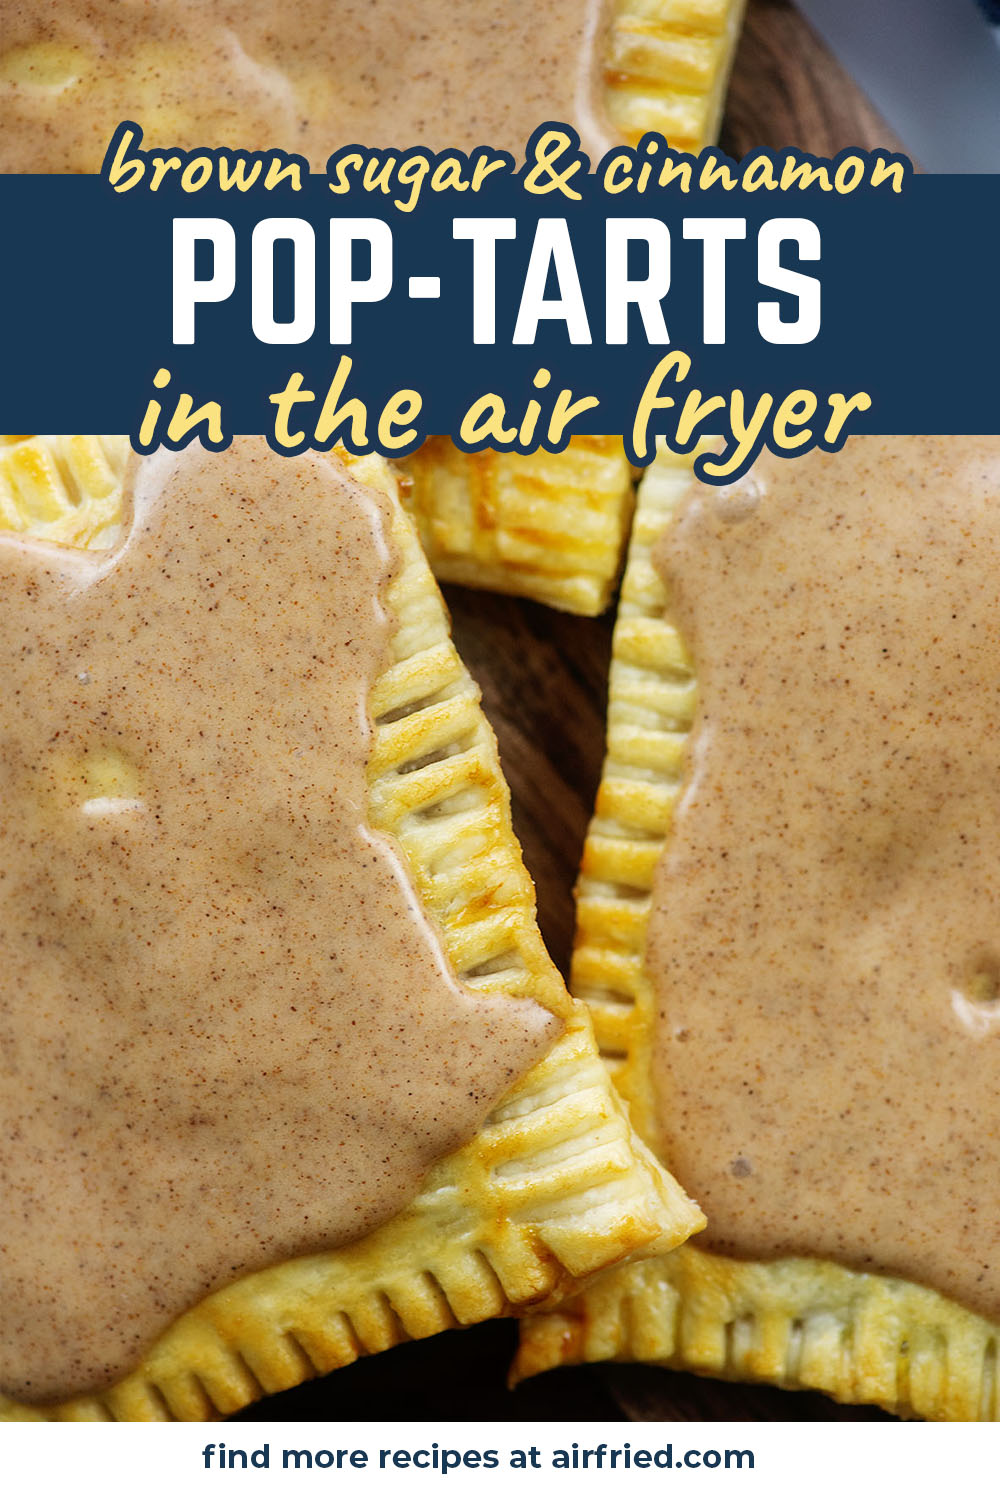 These homemade pop tarts are filled with brown sugar and cinnamon with a sweet brown sugar glaze! #airfried #breakfast #recipe